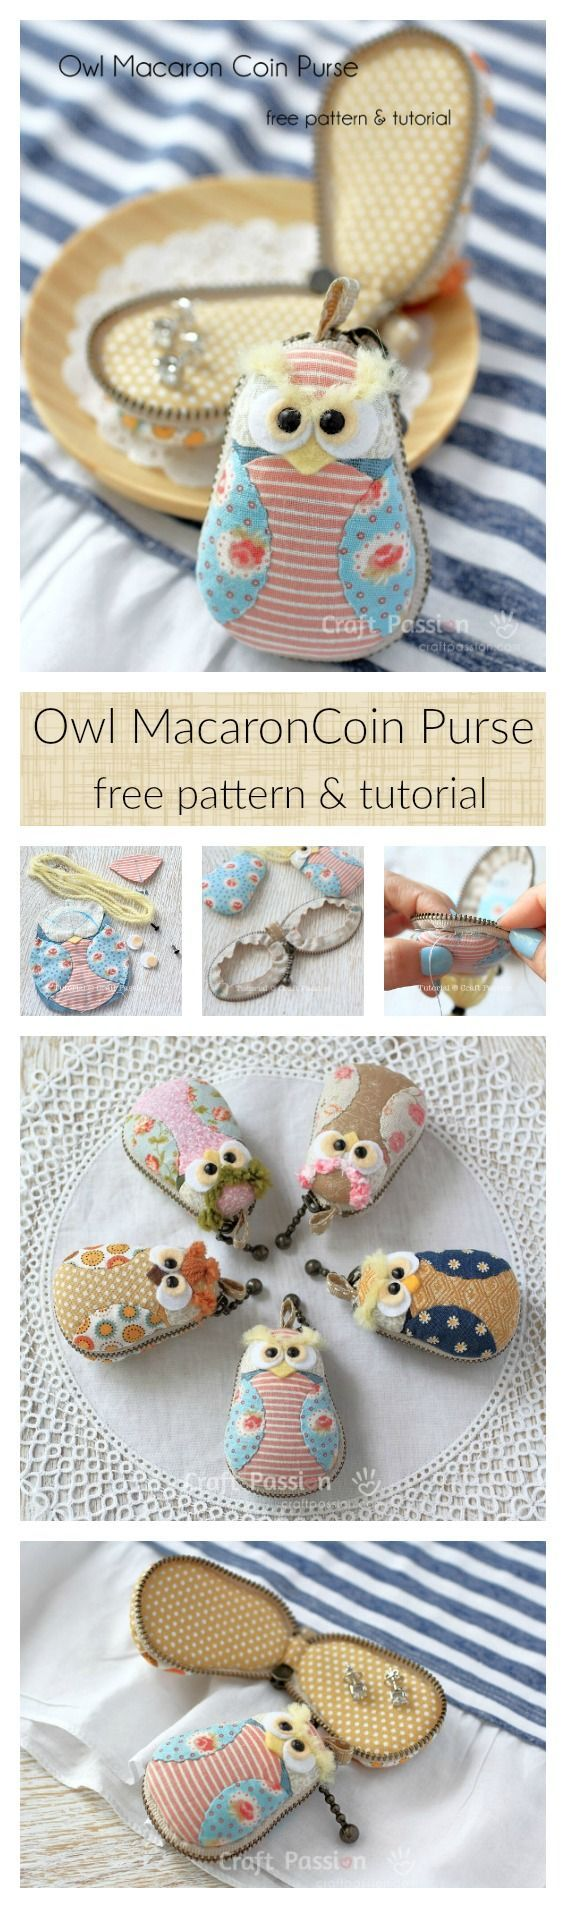 Owl macaron coin purse free sewing pattern macaron coin purse owl macaron coin purse free sewing pattern jeuxipadfo Image collections